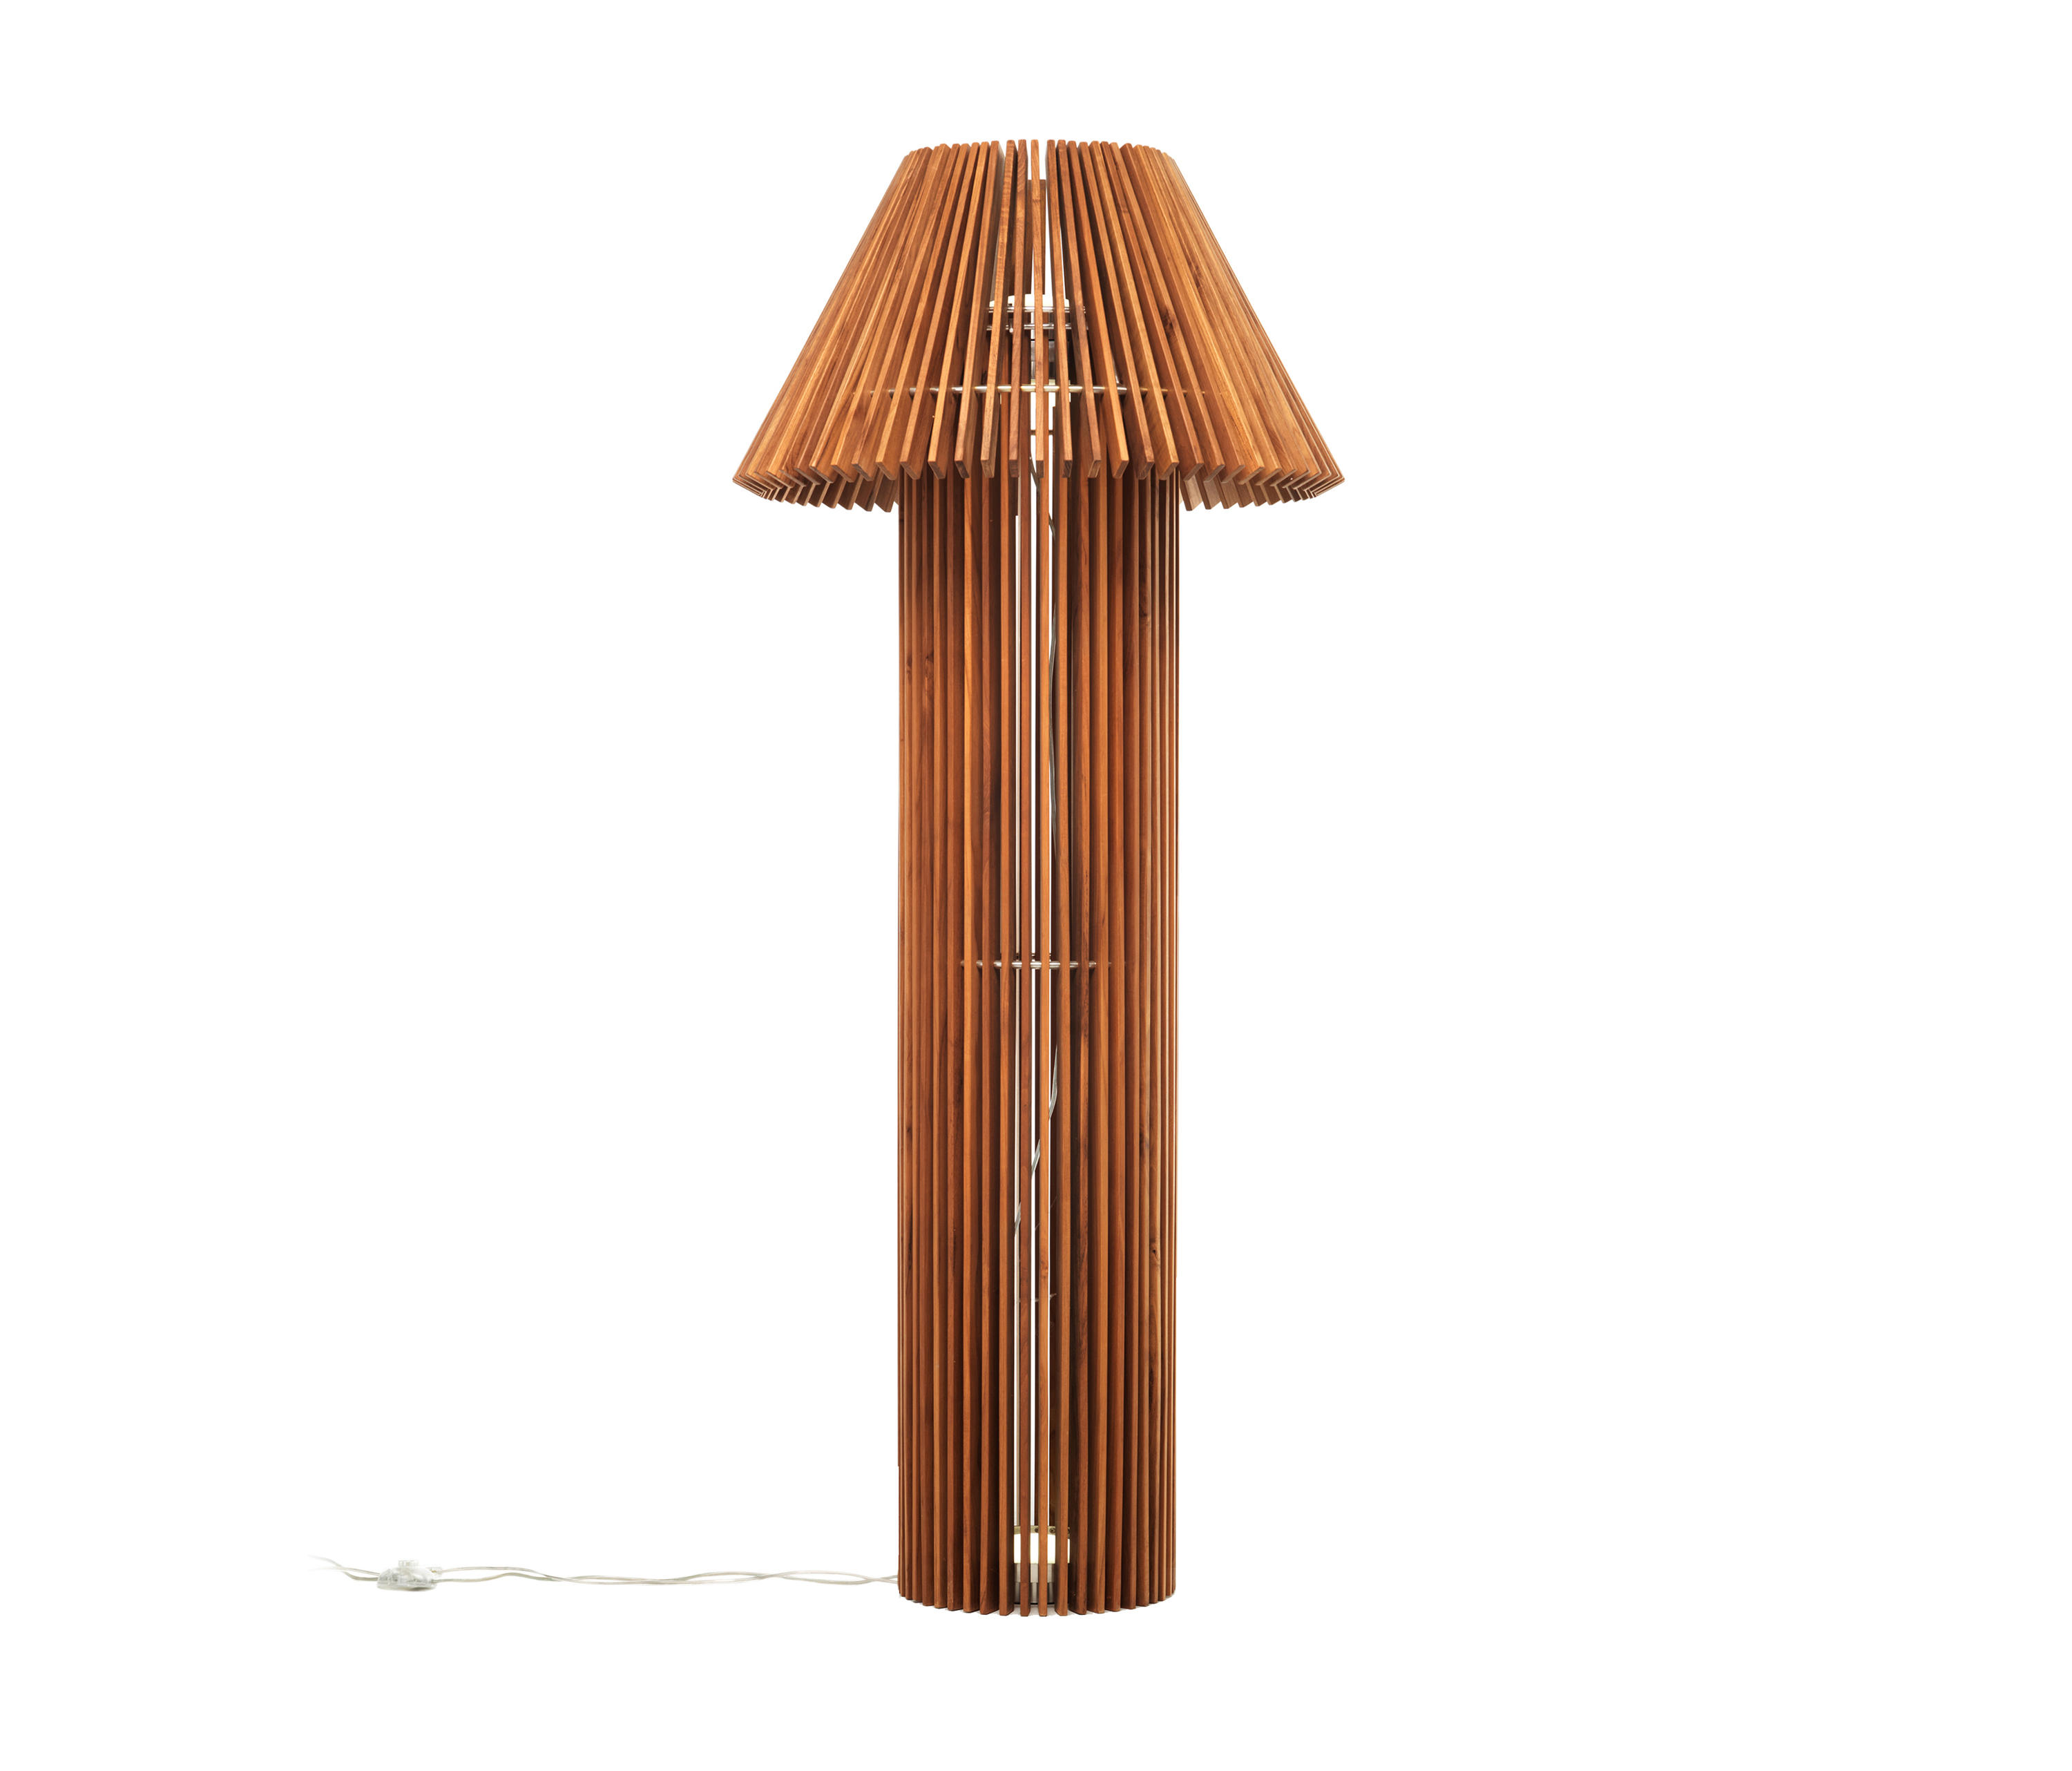 FLOOR LAMPS IN WOOD High quality designer FLOOR LAMPS IN WOOD